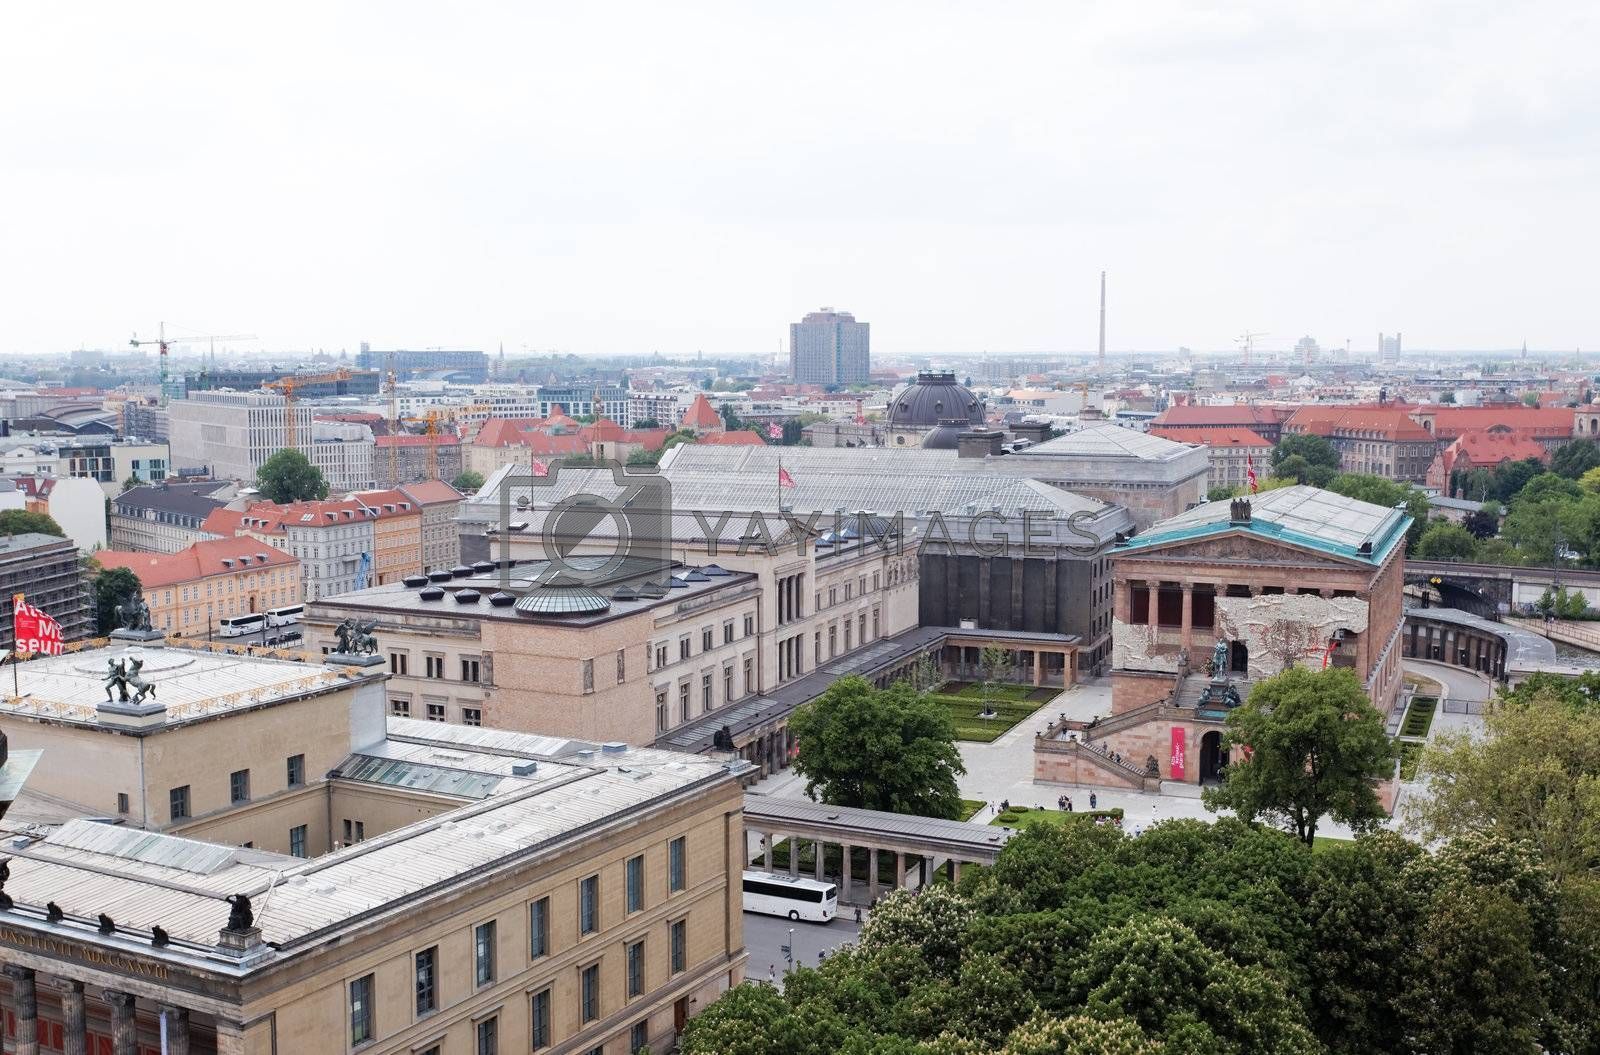 aerial view of central Berlin from the top of Berliner Dom